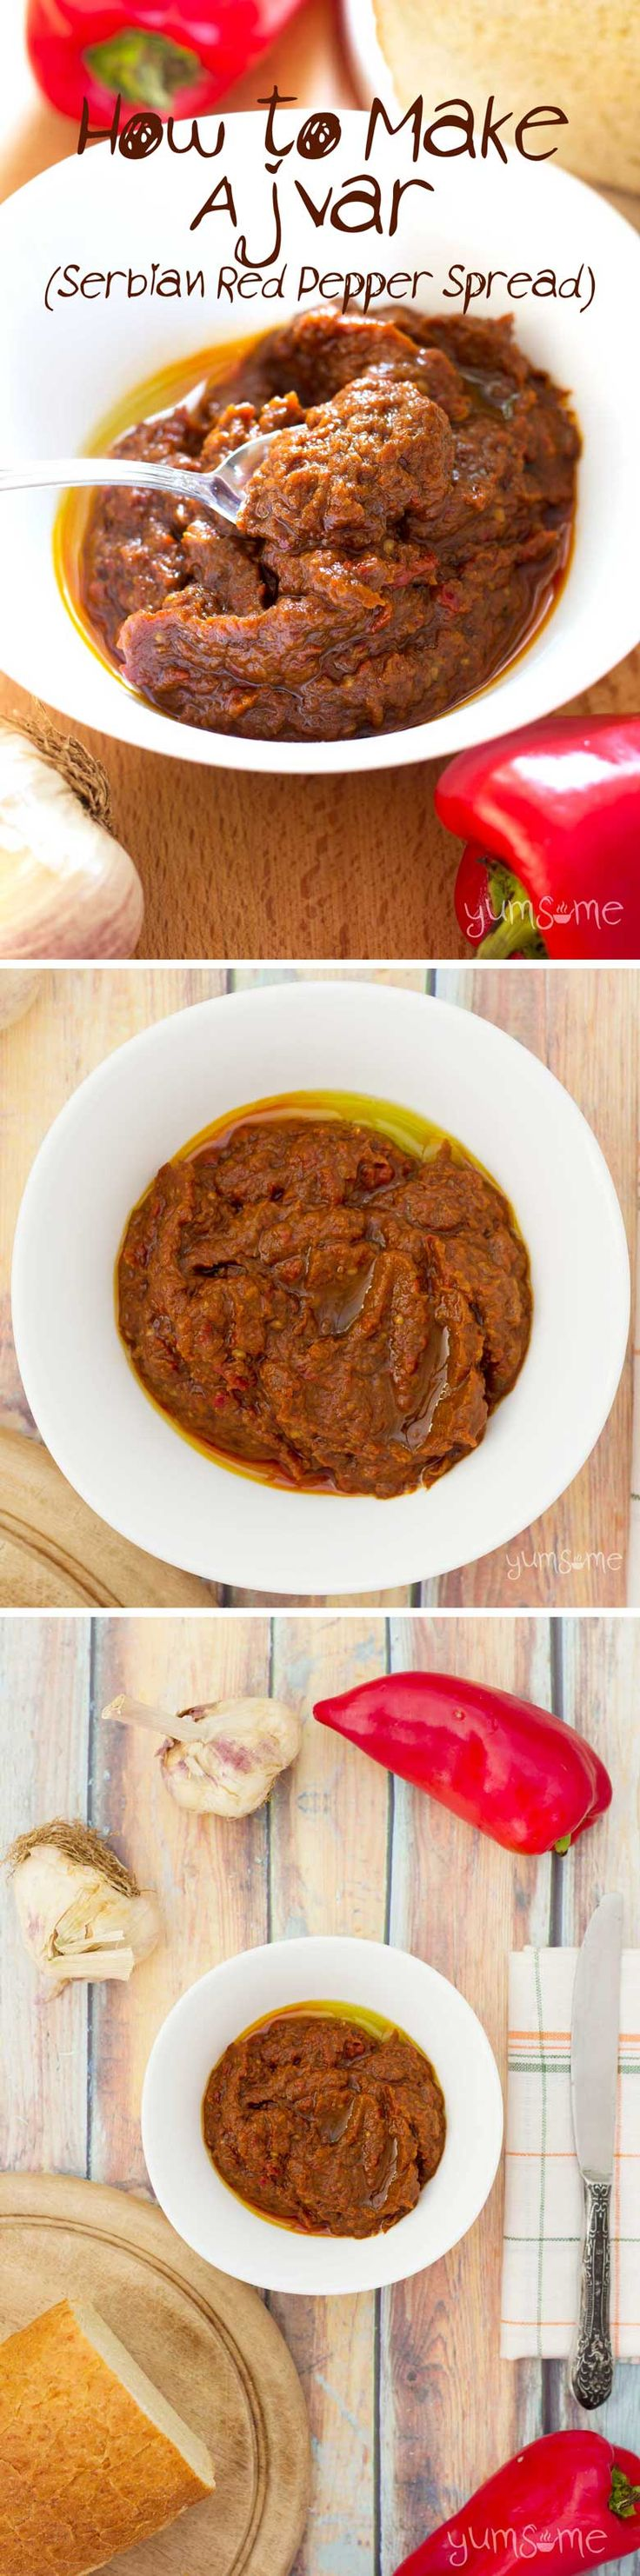 A staple of Balkan cuisine, ajvar is a delicious rich red pepper relish that's perfect with fresh rustic bread, pasta, crackers, baked potatoes, burgers, sausages, etc. | yumsome.com